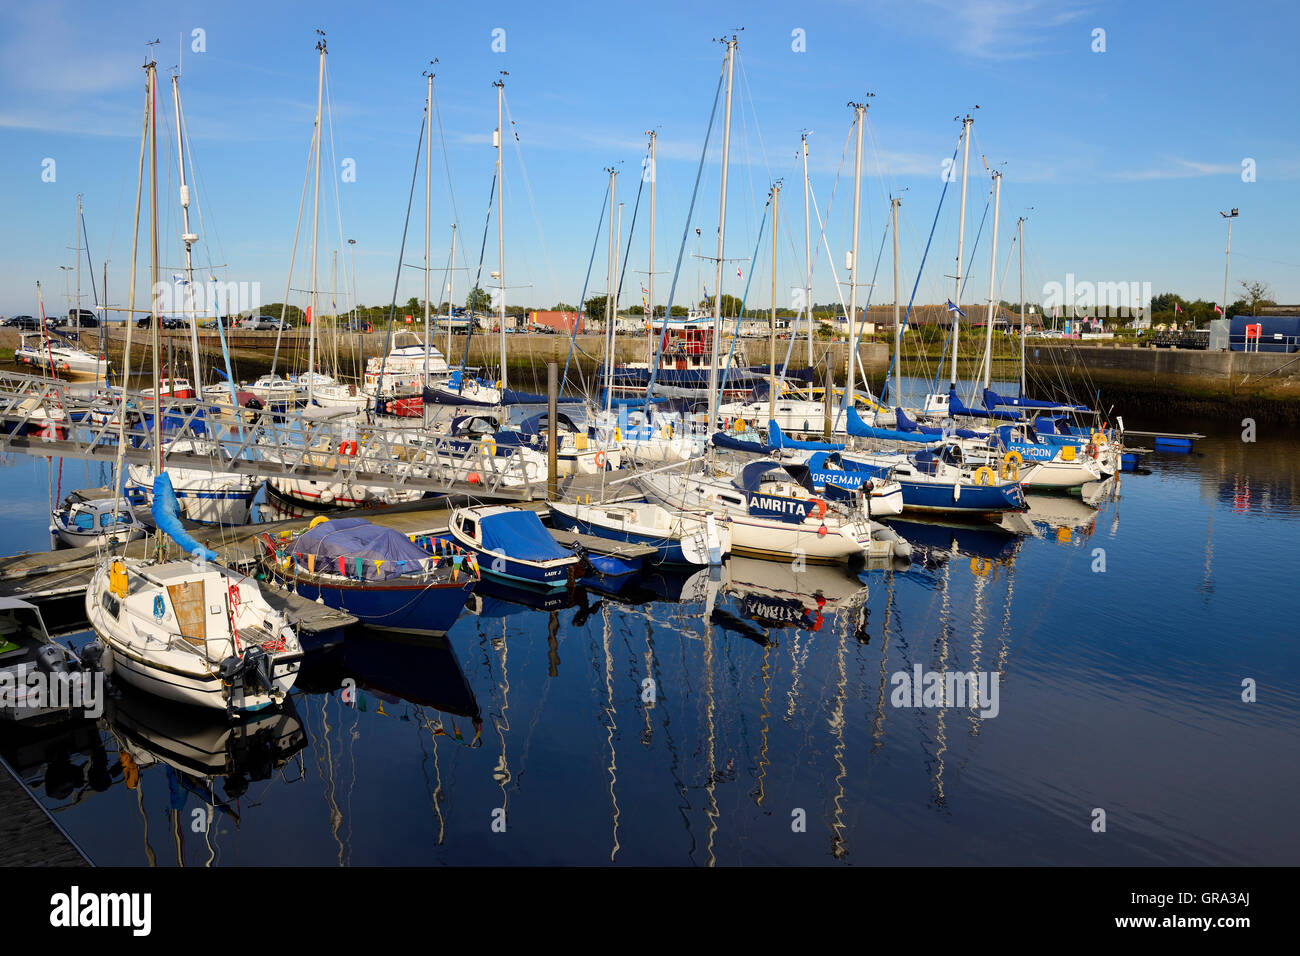 Yachts in Nairn harbour, Inverness-shire, Highland, Scotland - Stock Image